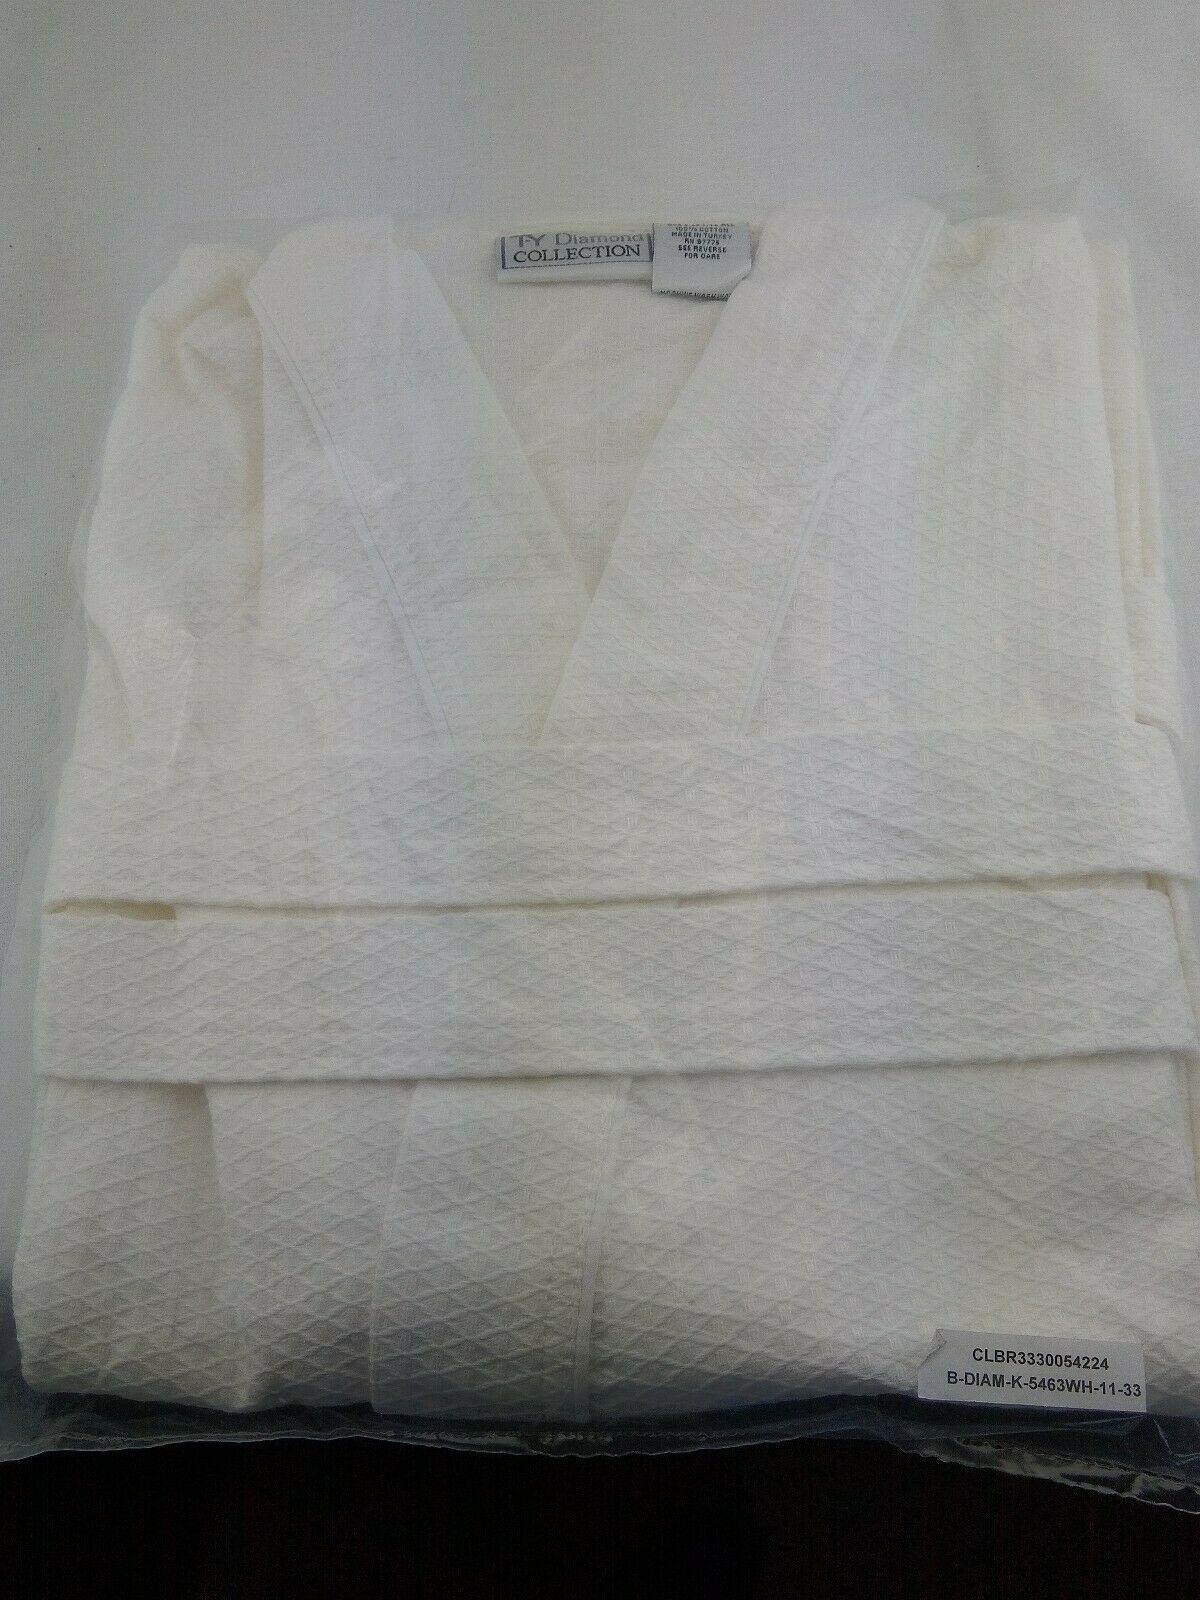 Alan Pendergrass Robes 1732 White 36 In Junior Size Cotton Waffle Robe White For Sale Online Ebay